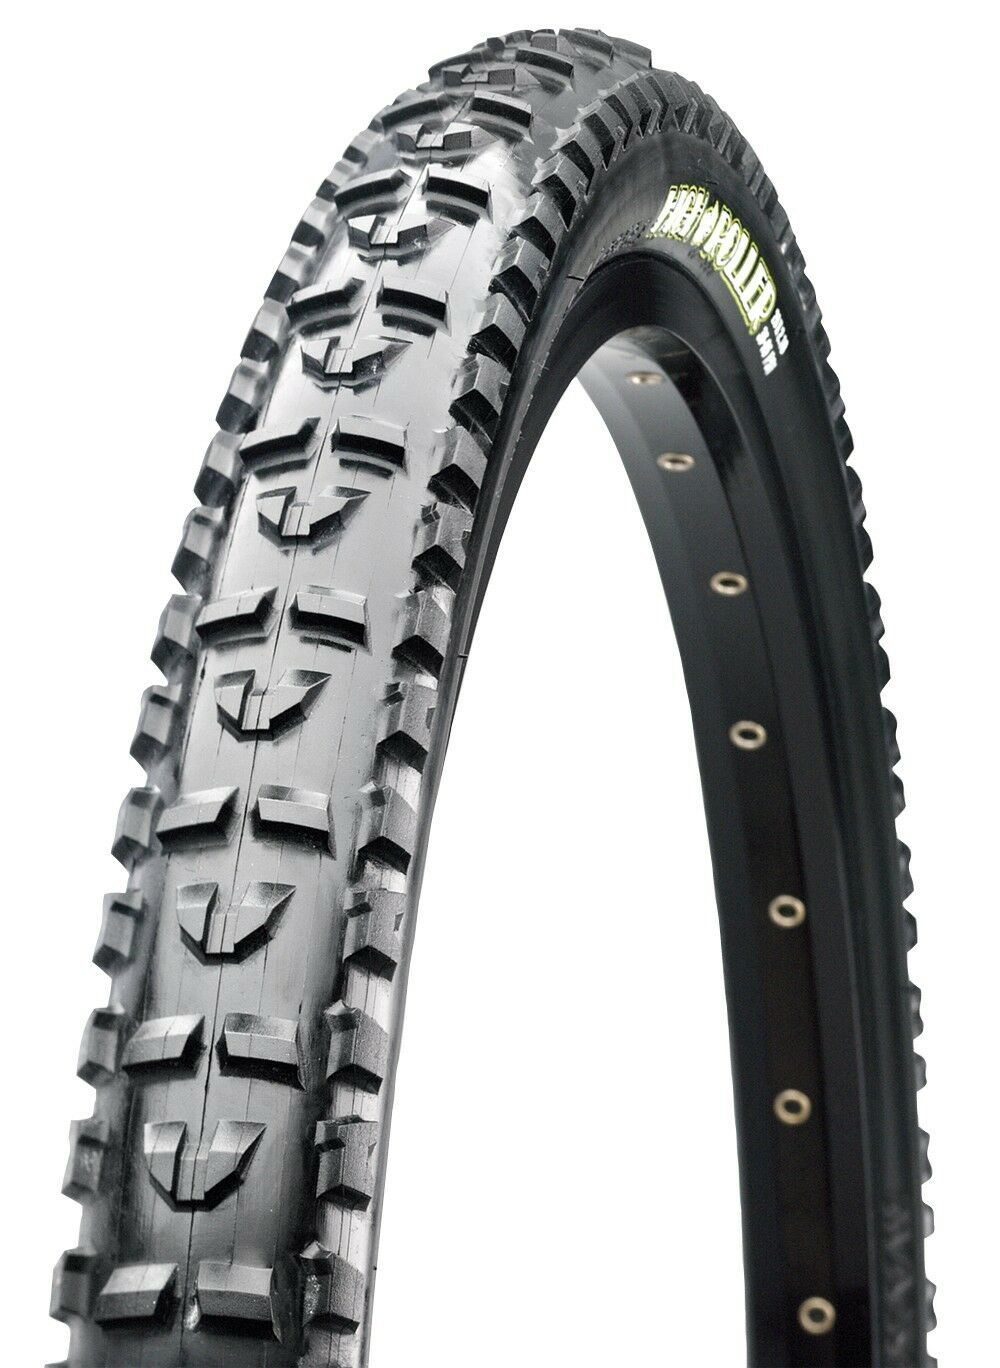 Maxxis High Roller LUST UST Tubeless 26x2.35 MTB Bike  Tyre  large selection